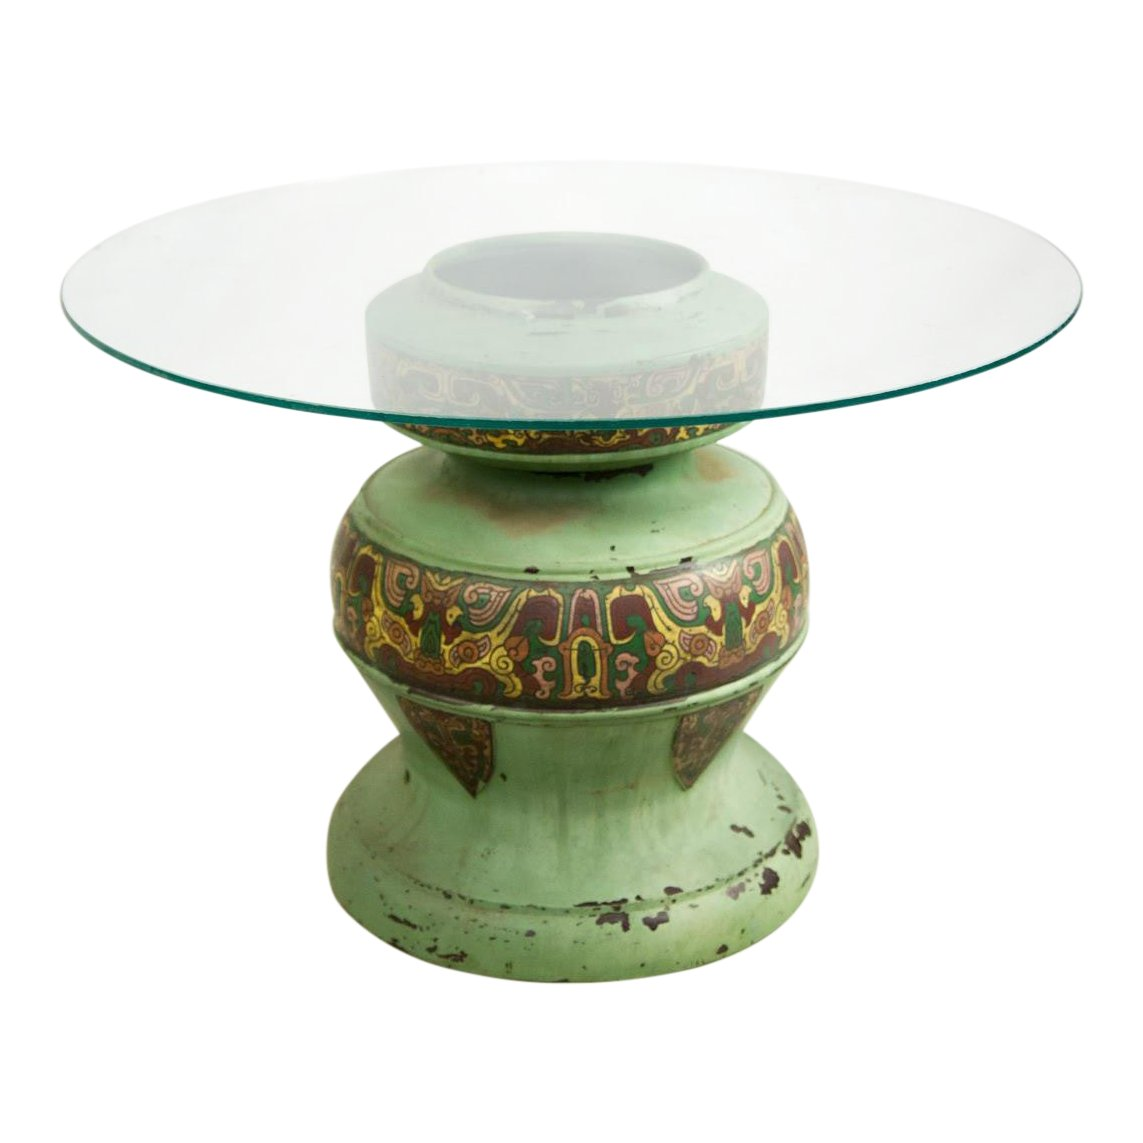 tibetan brass cloisonne with glass top urn accent table chairish drum wrought iron legs office side unfinished furniture round white wood coffee futon covers bath and beyond